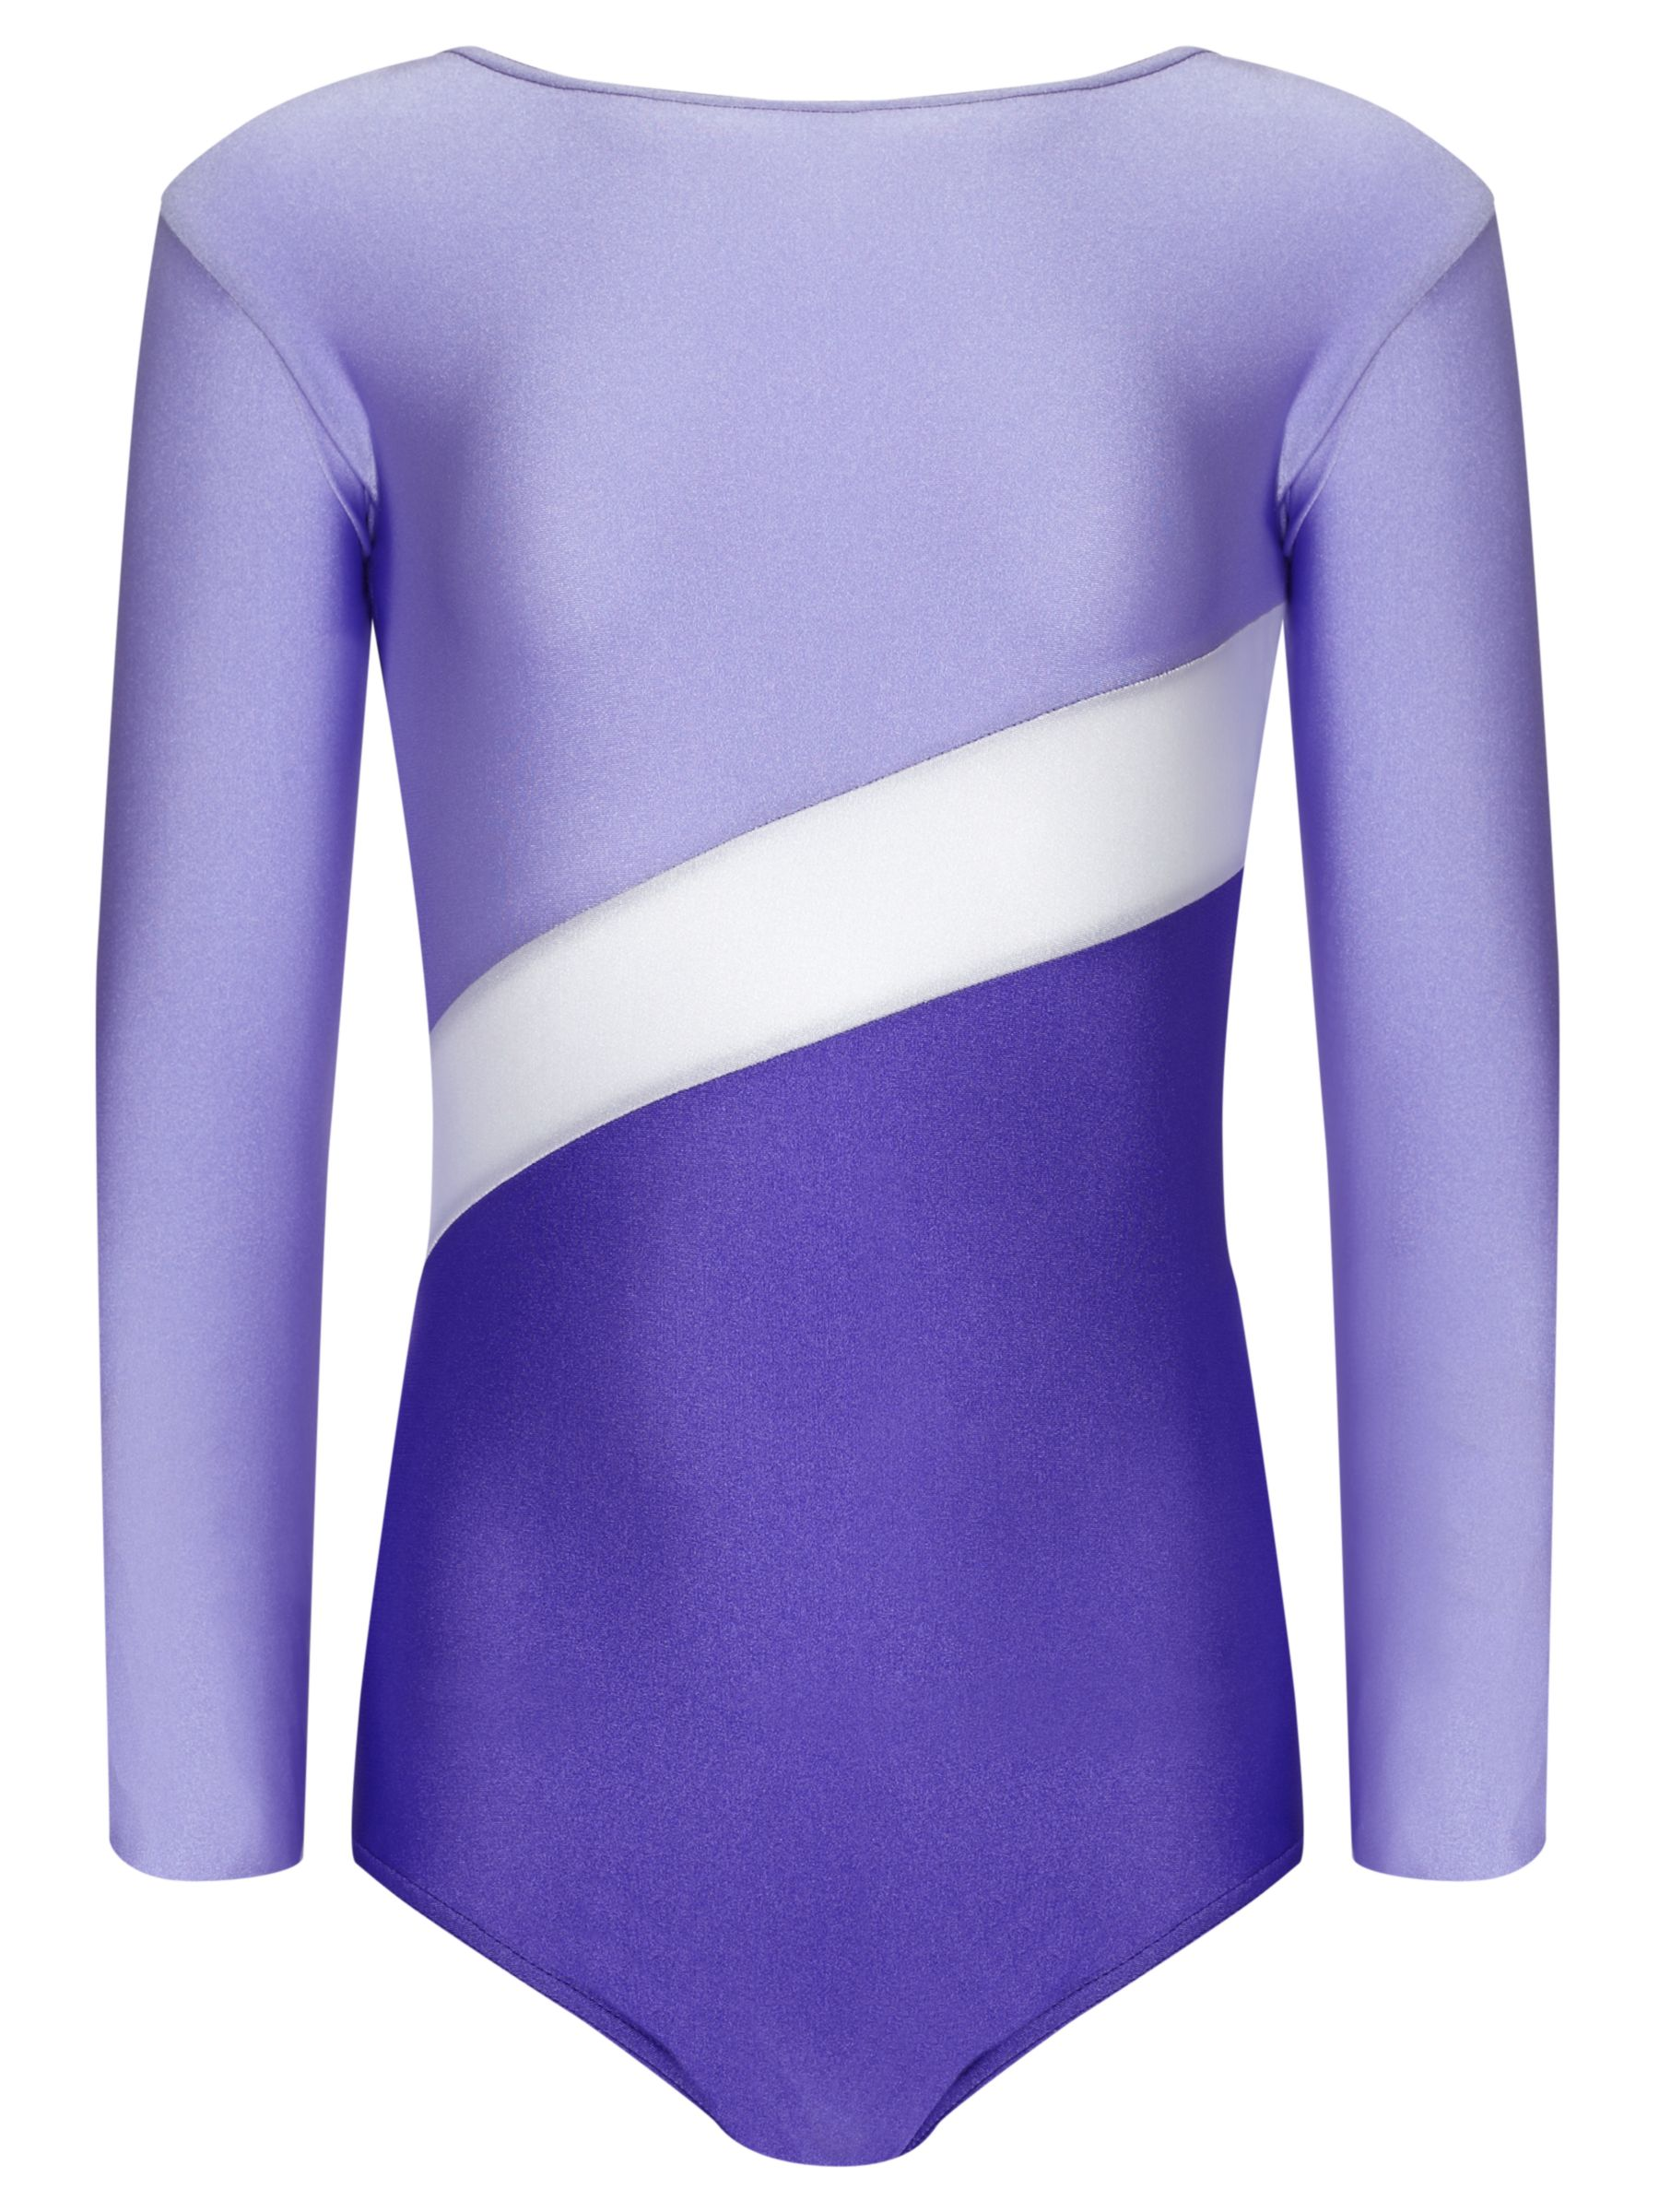 Tappers and Pointers Tappers and Pointers Shine Panel Gym Leotard, Purple